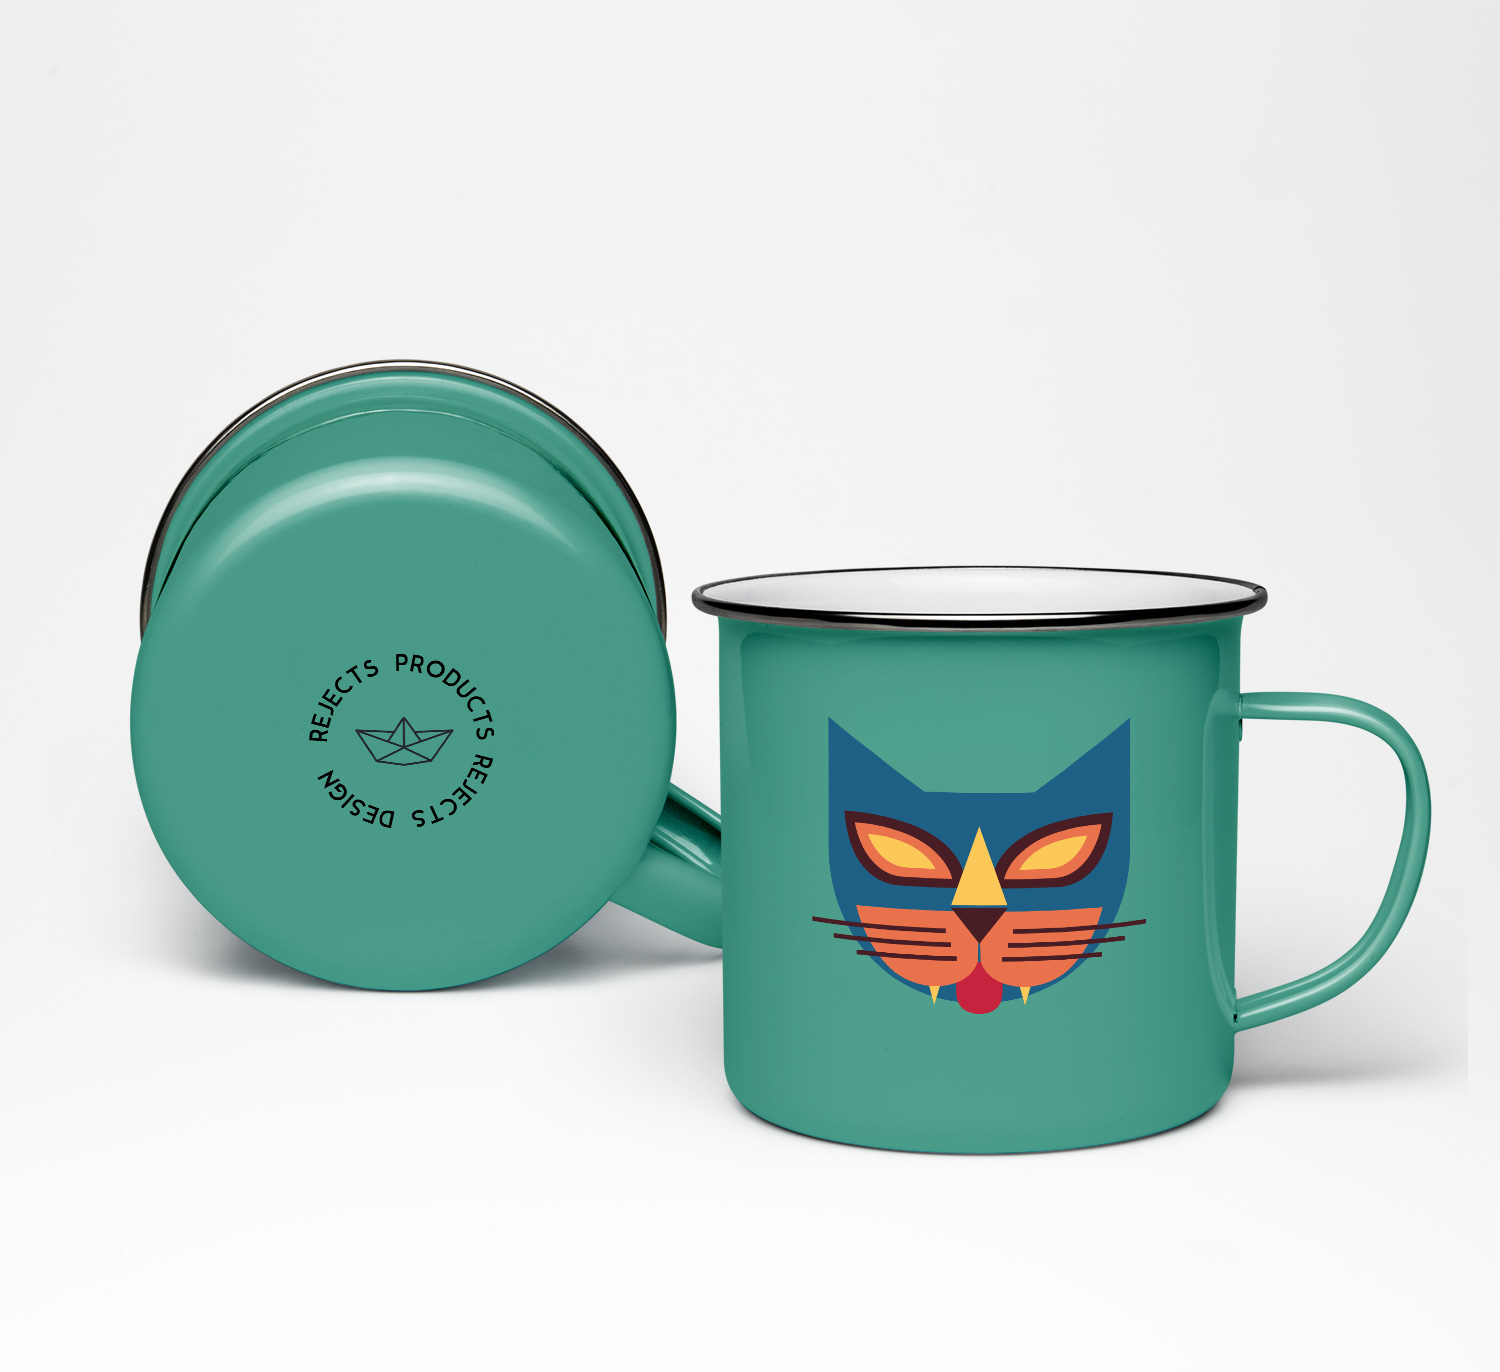 seventies cats mugs verde/blu